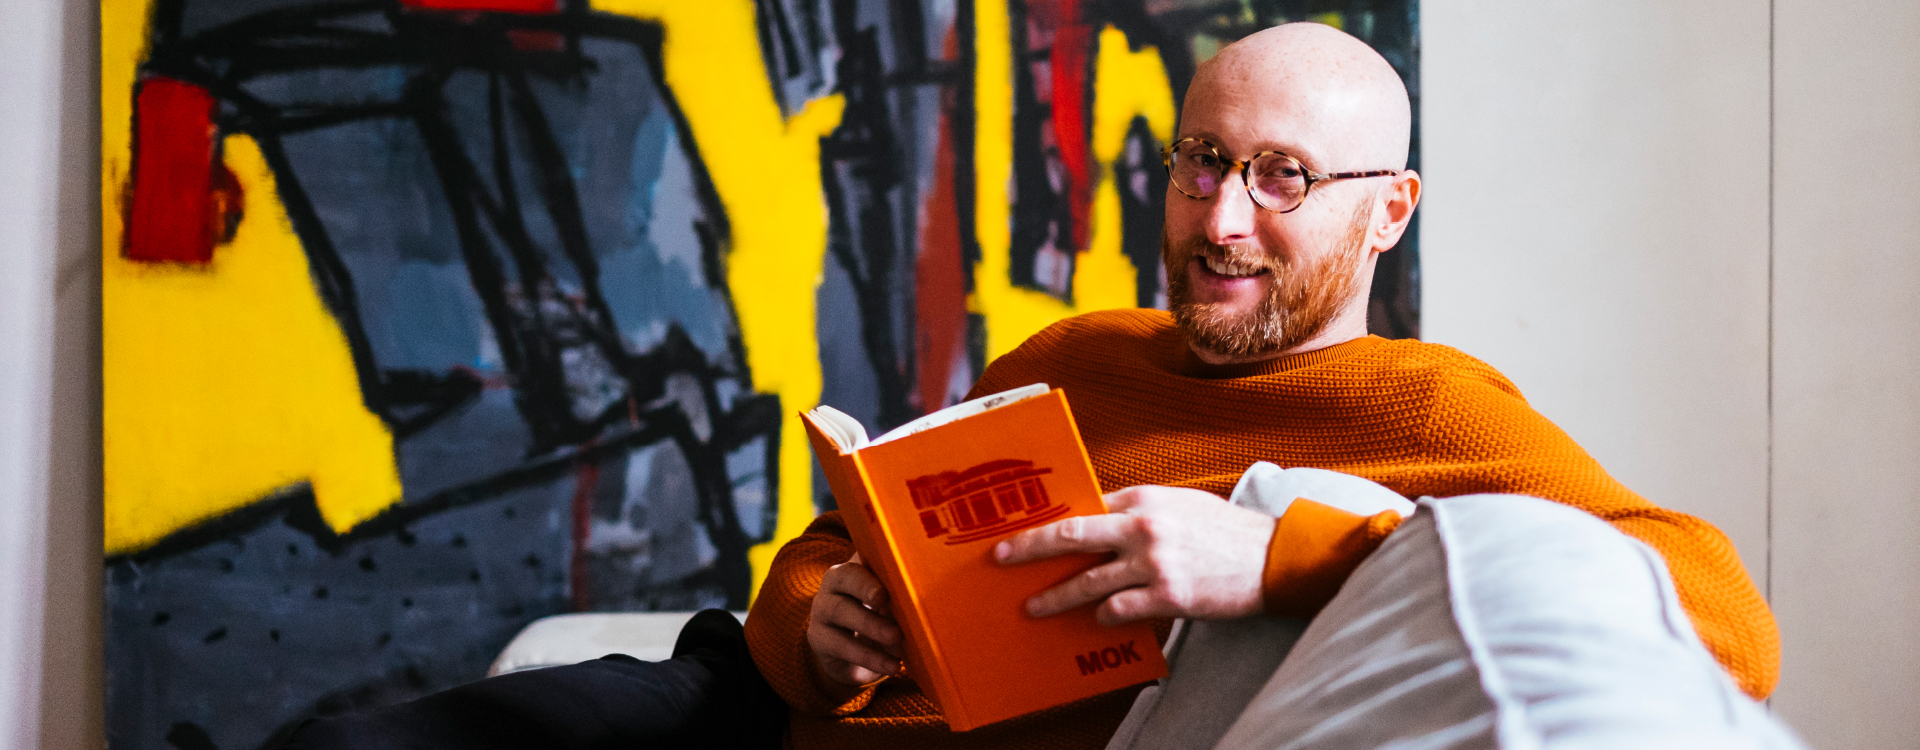 man reading on a couch